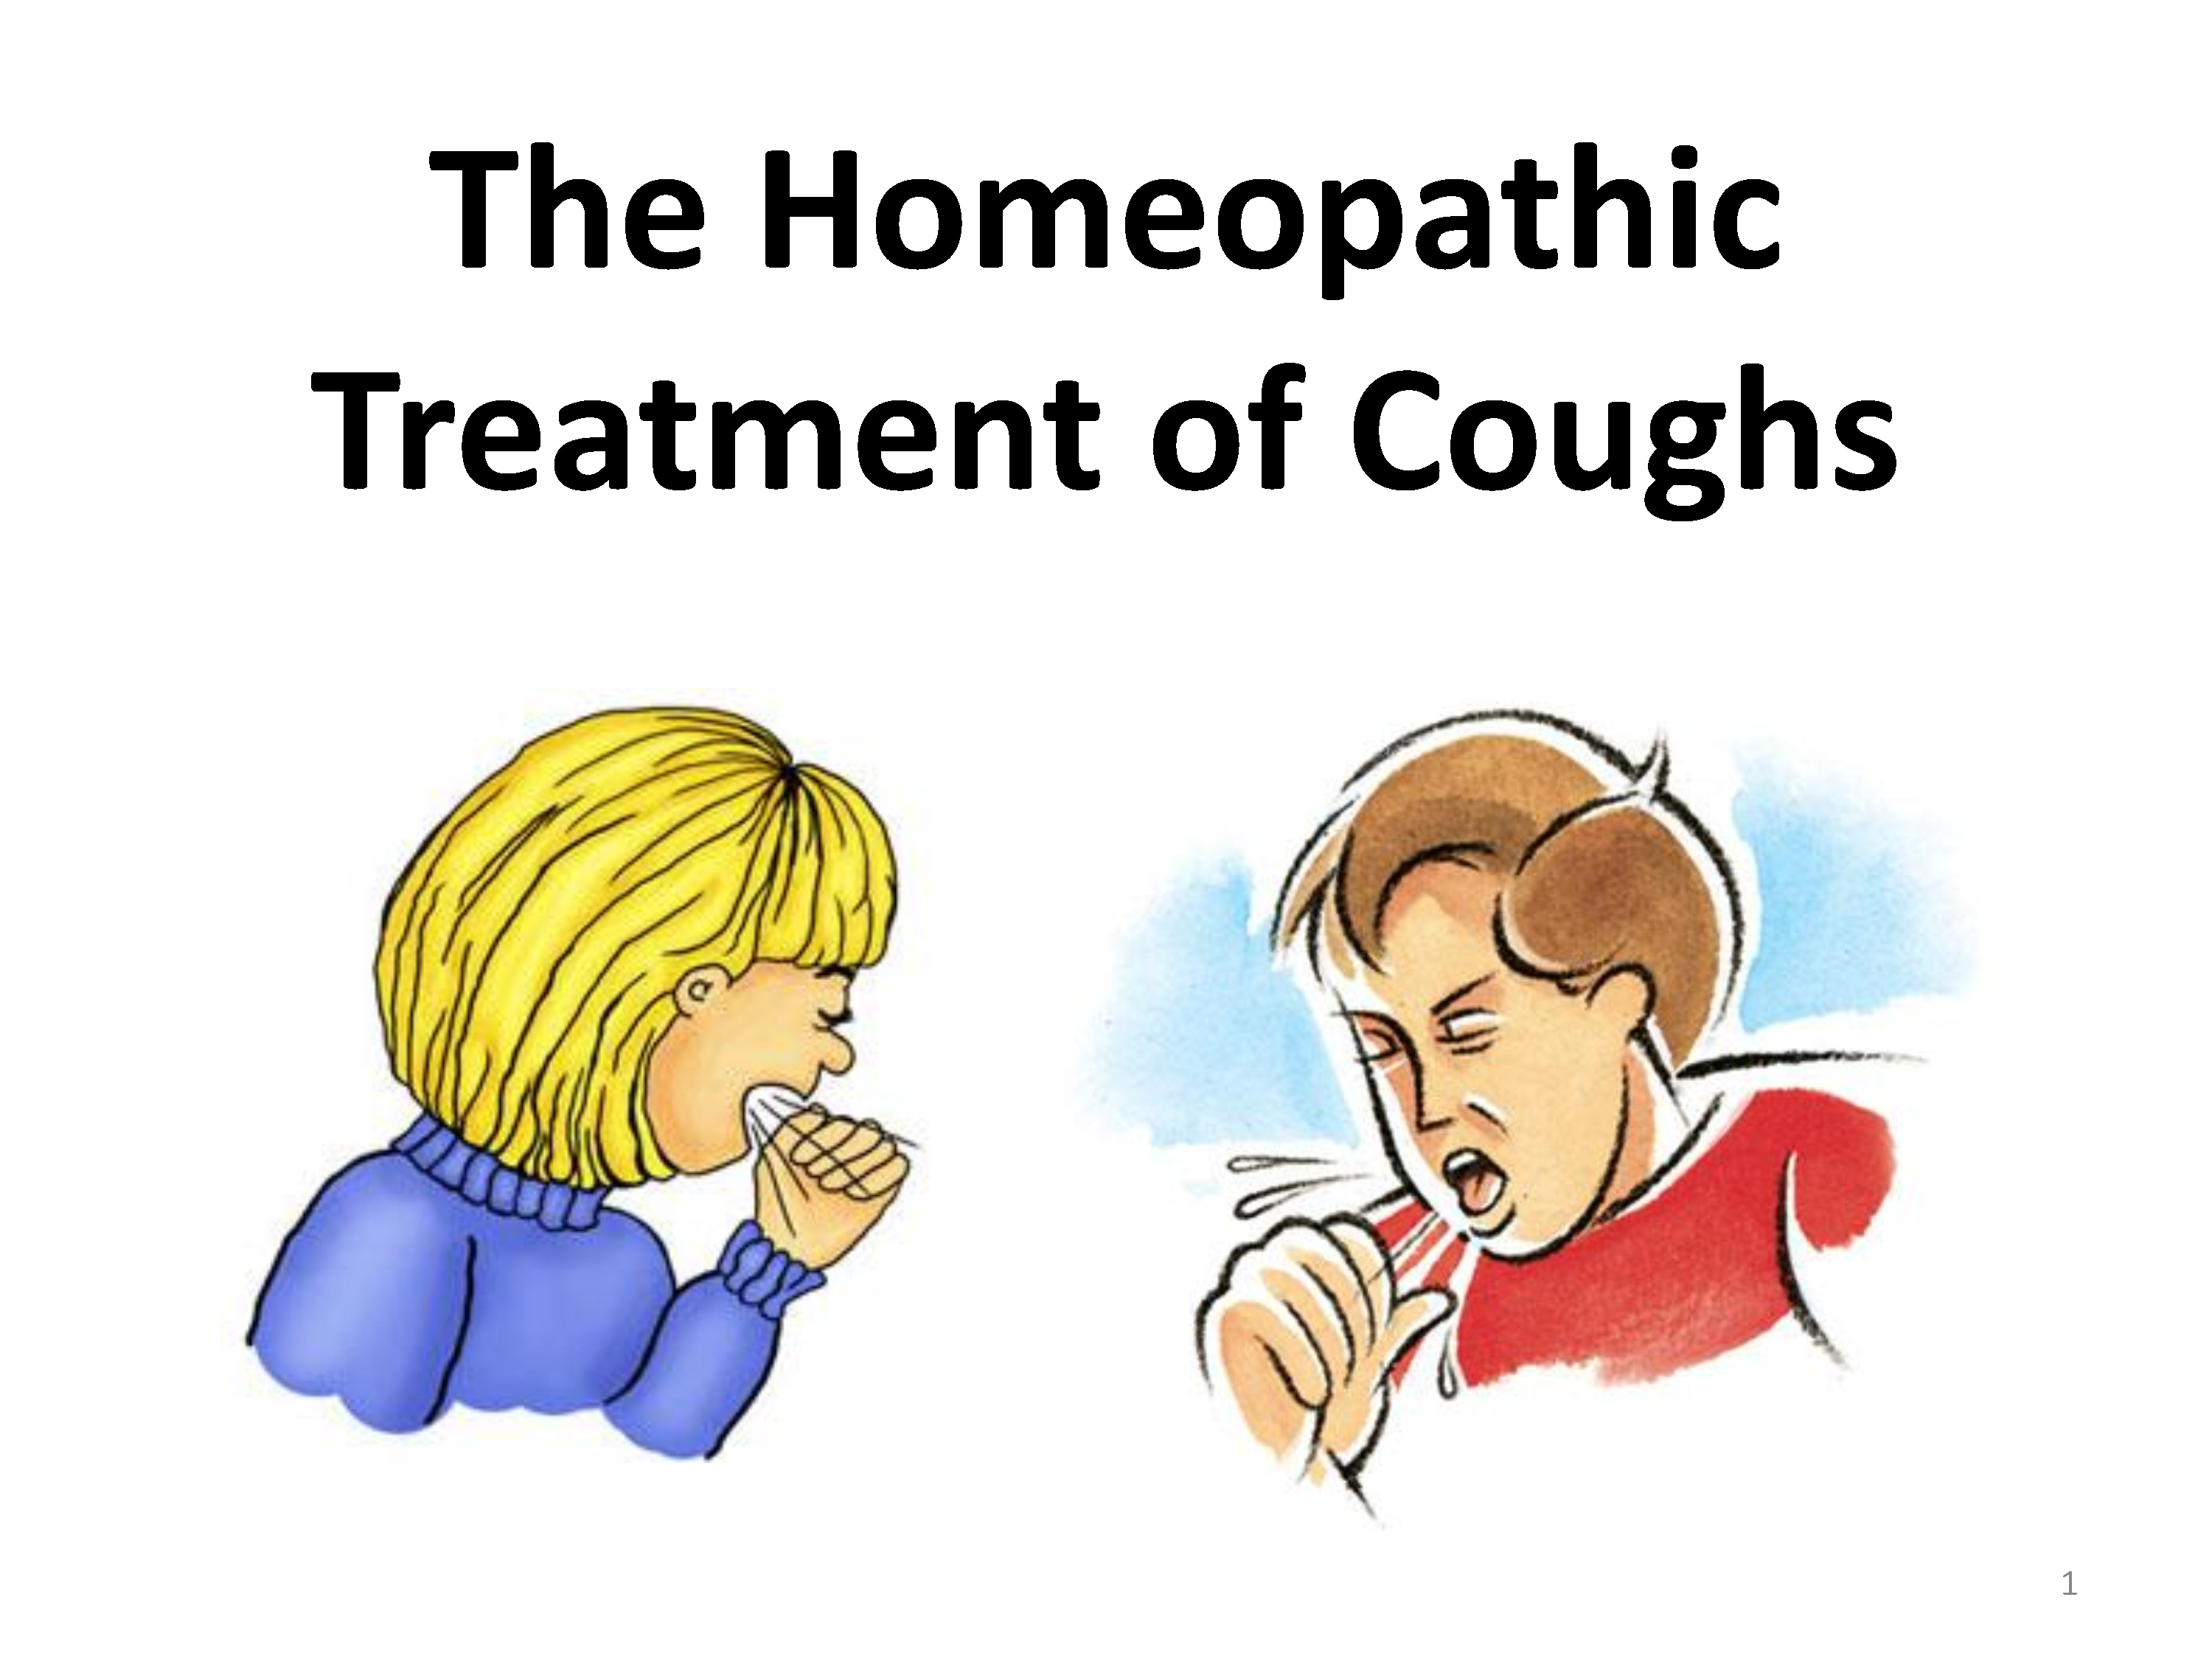 2020.06.12 K Elia TheHomeopathicTreatment of Coughs Influenza